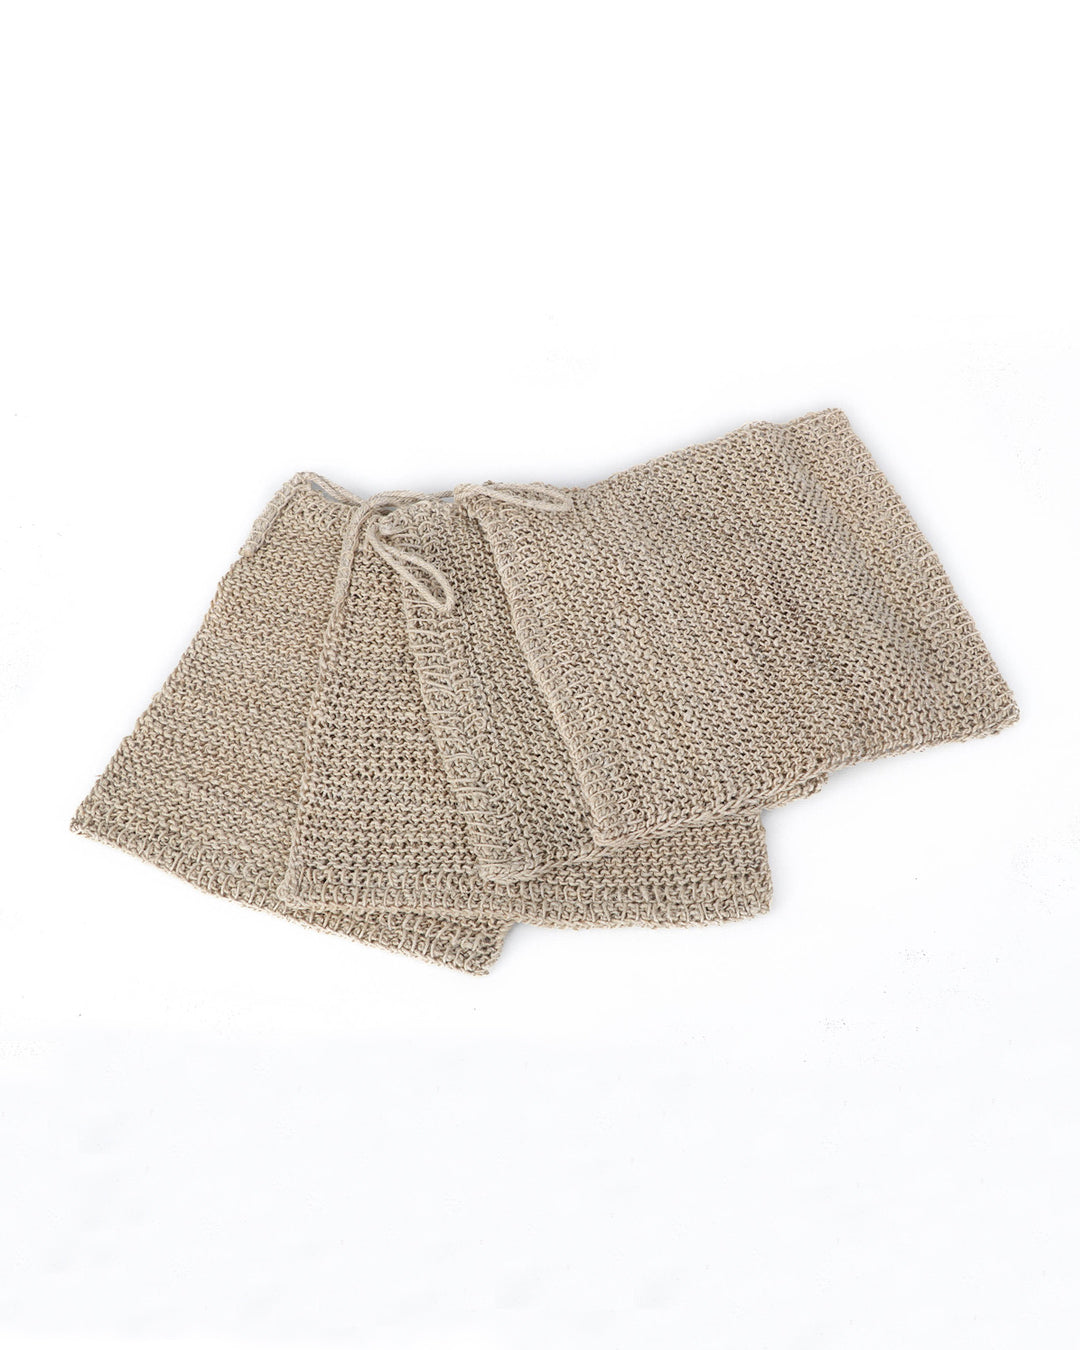 Hemp Knitted Wash Cloths, Medium - Pack of 4